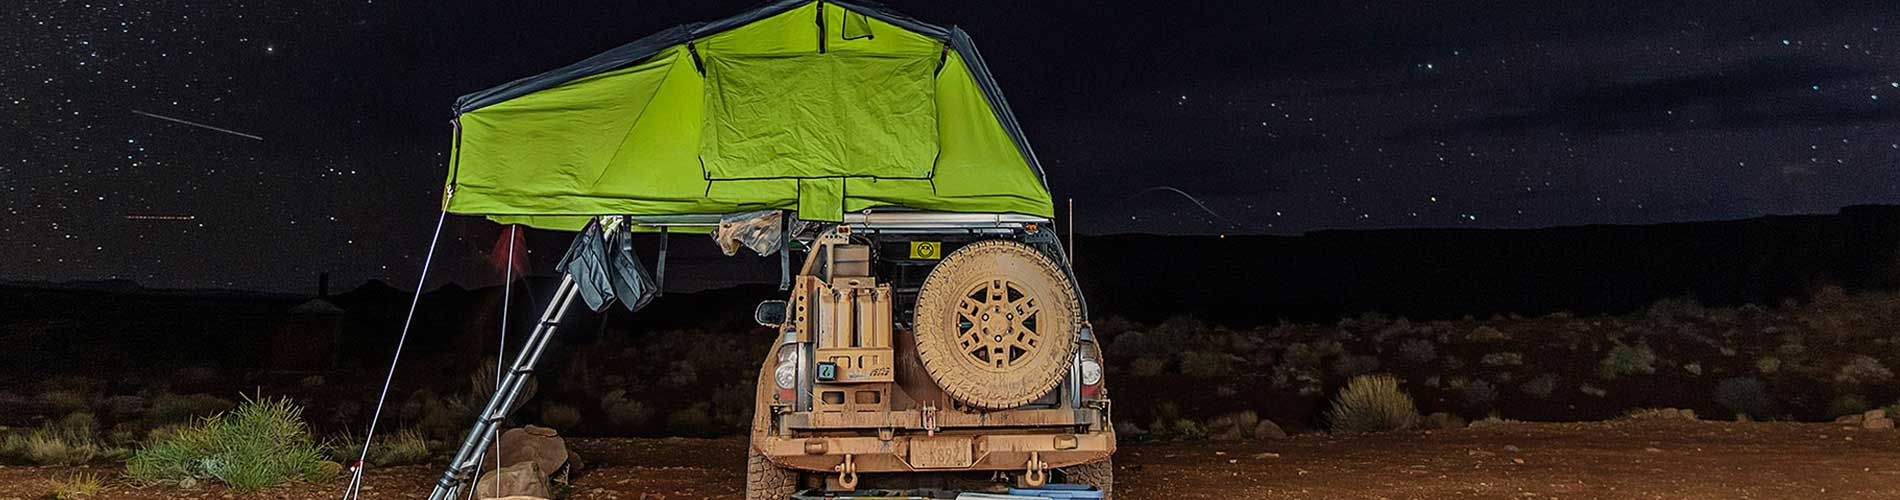 Blackfire - Visit us at the Overland Expo